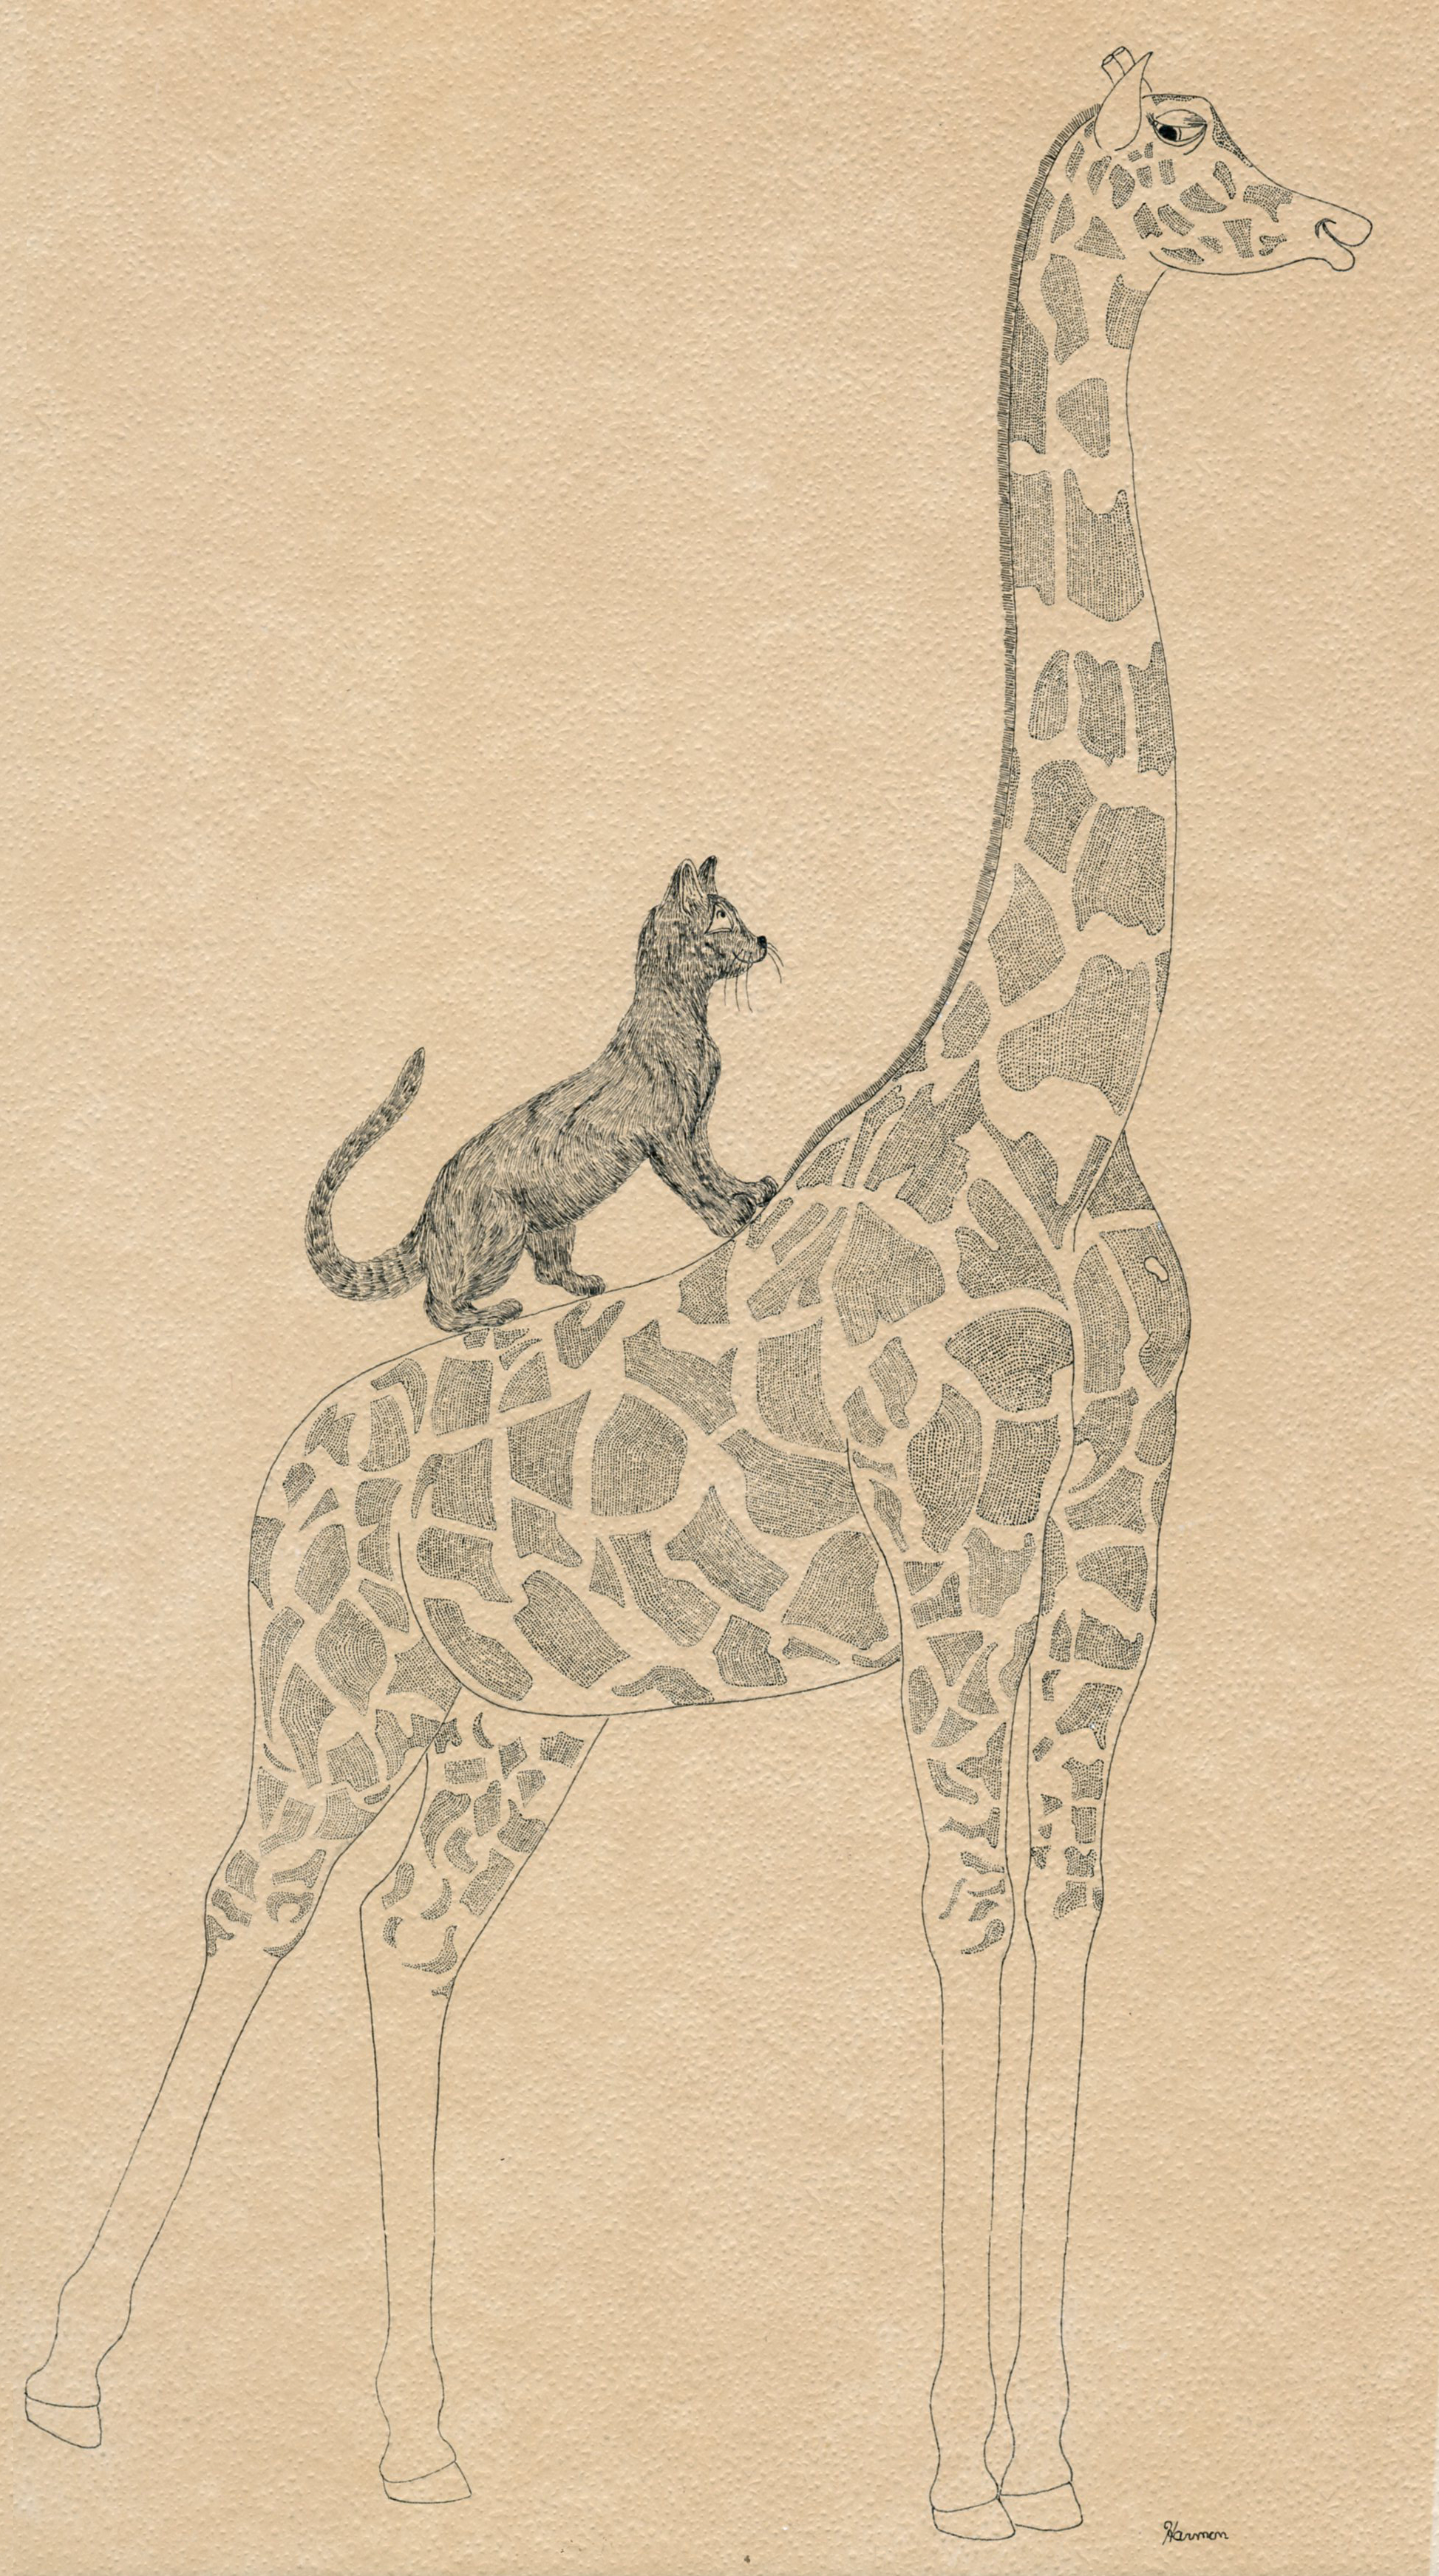 GIRAFFE AND CAT